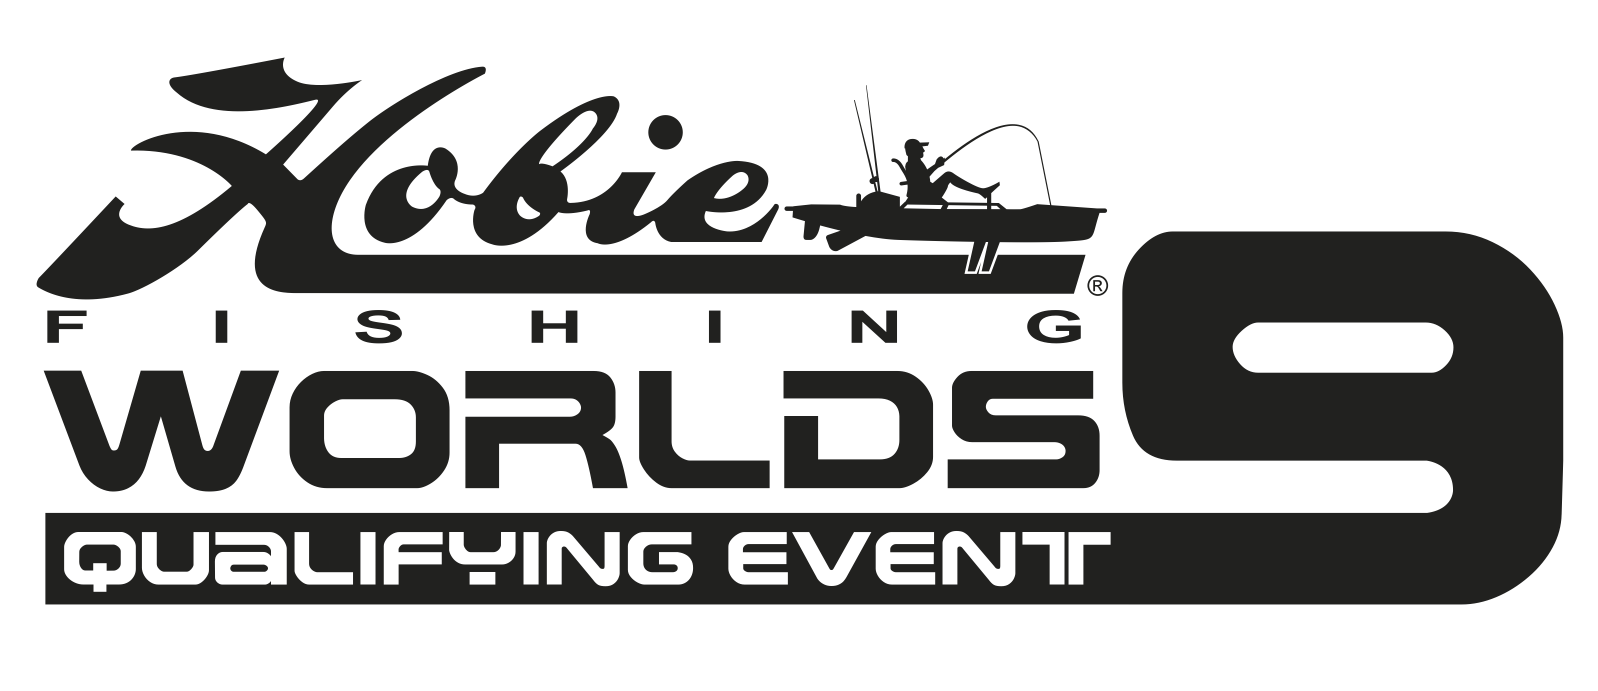 Hobie World 9 Qualifying Event